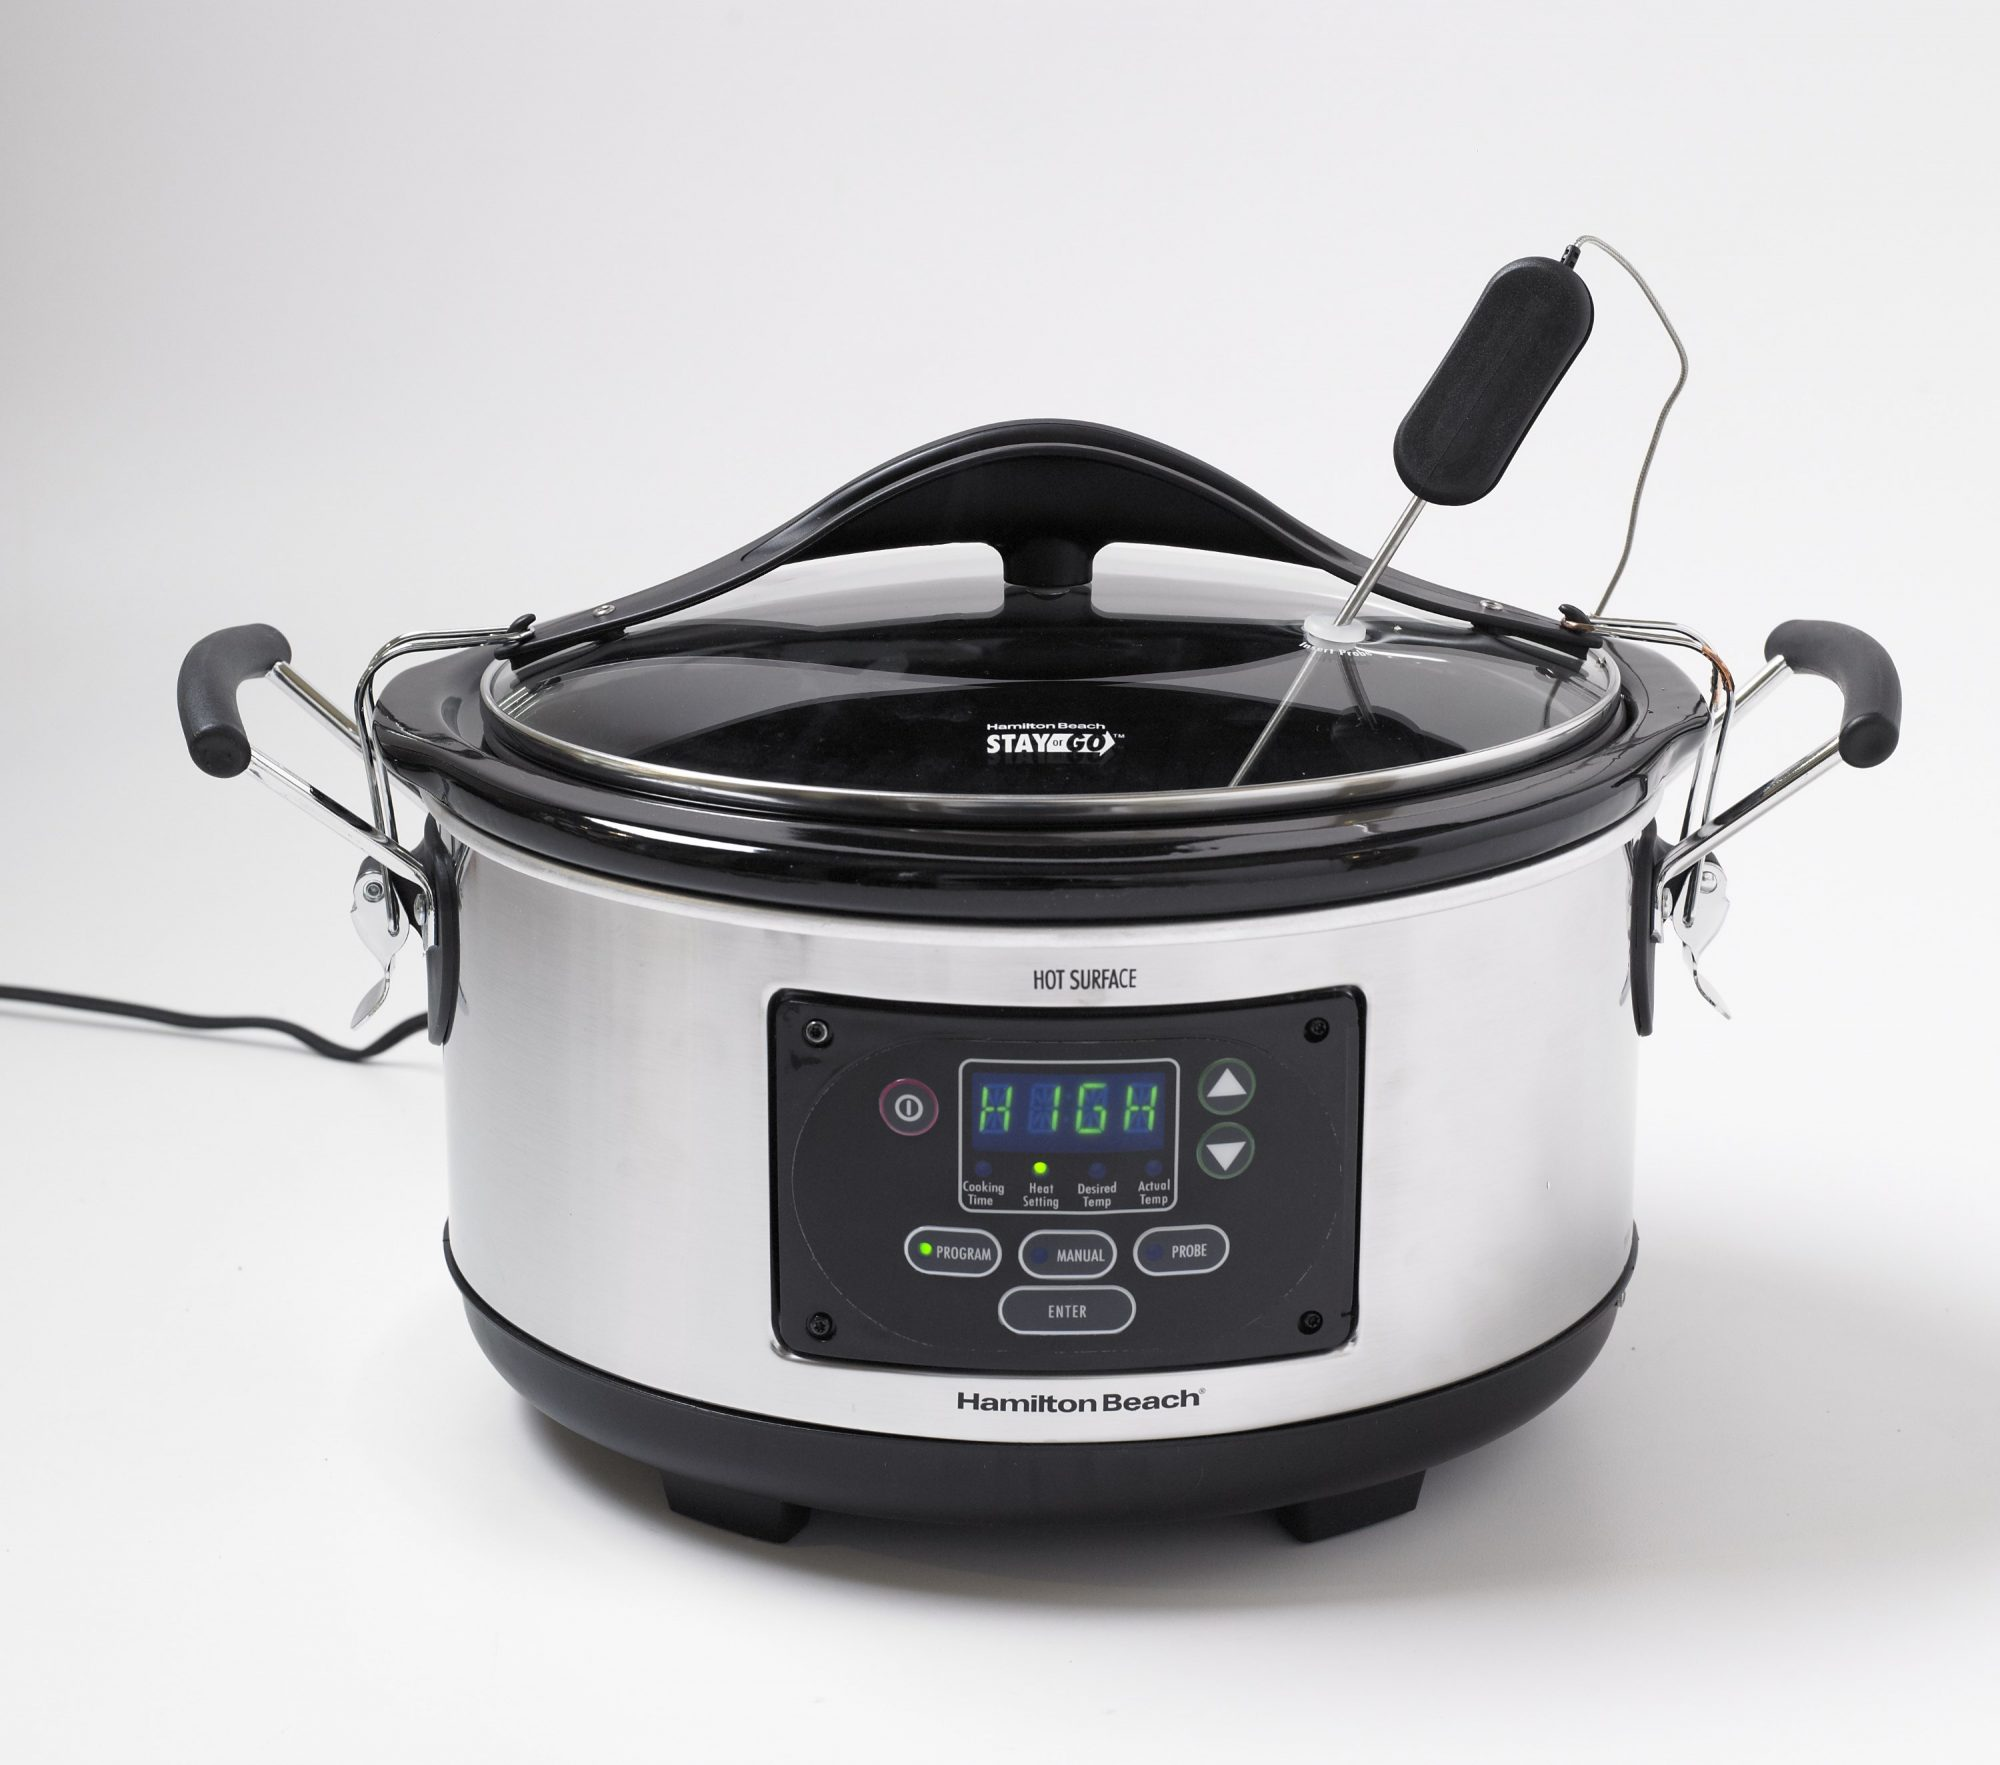 Slow Cooker with clipon lid and stirrer attachment